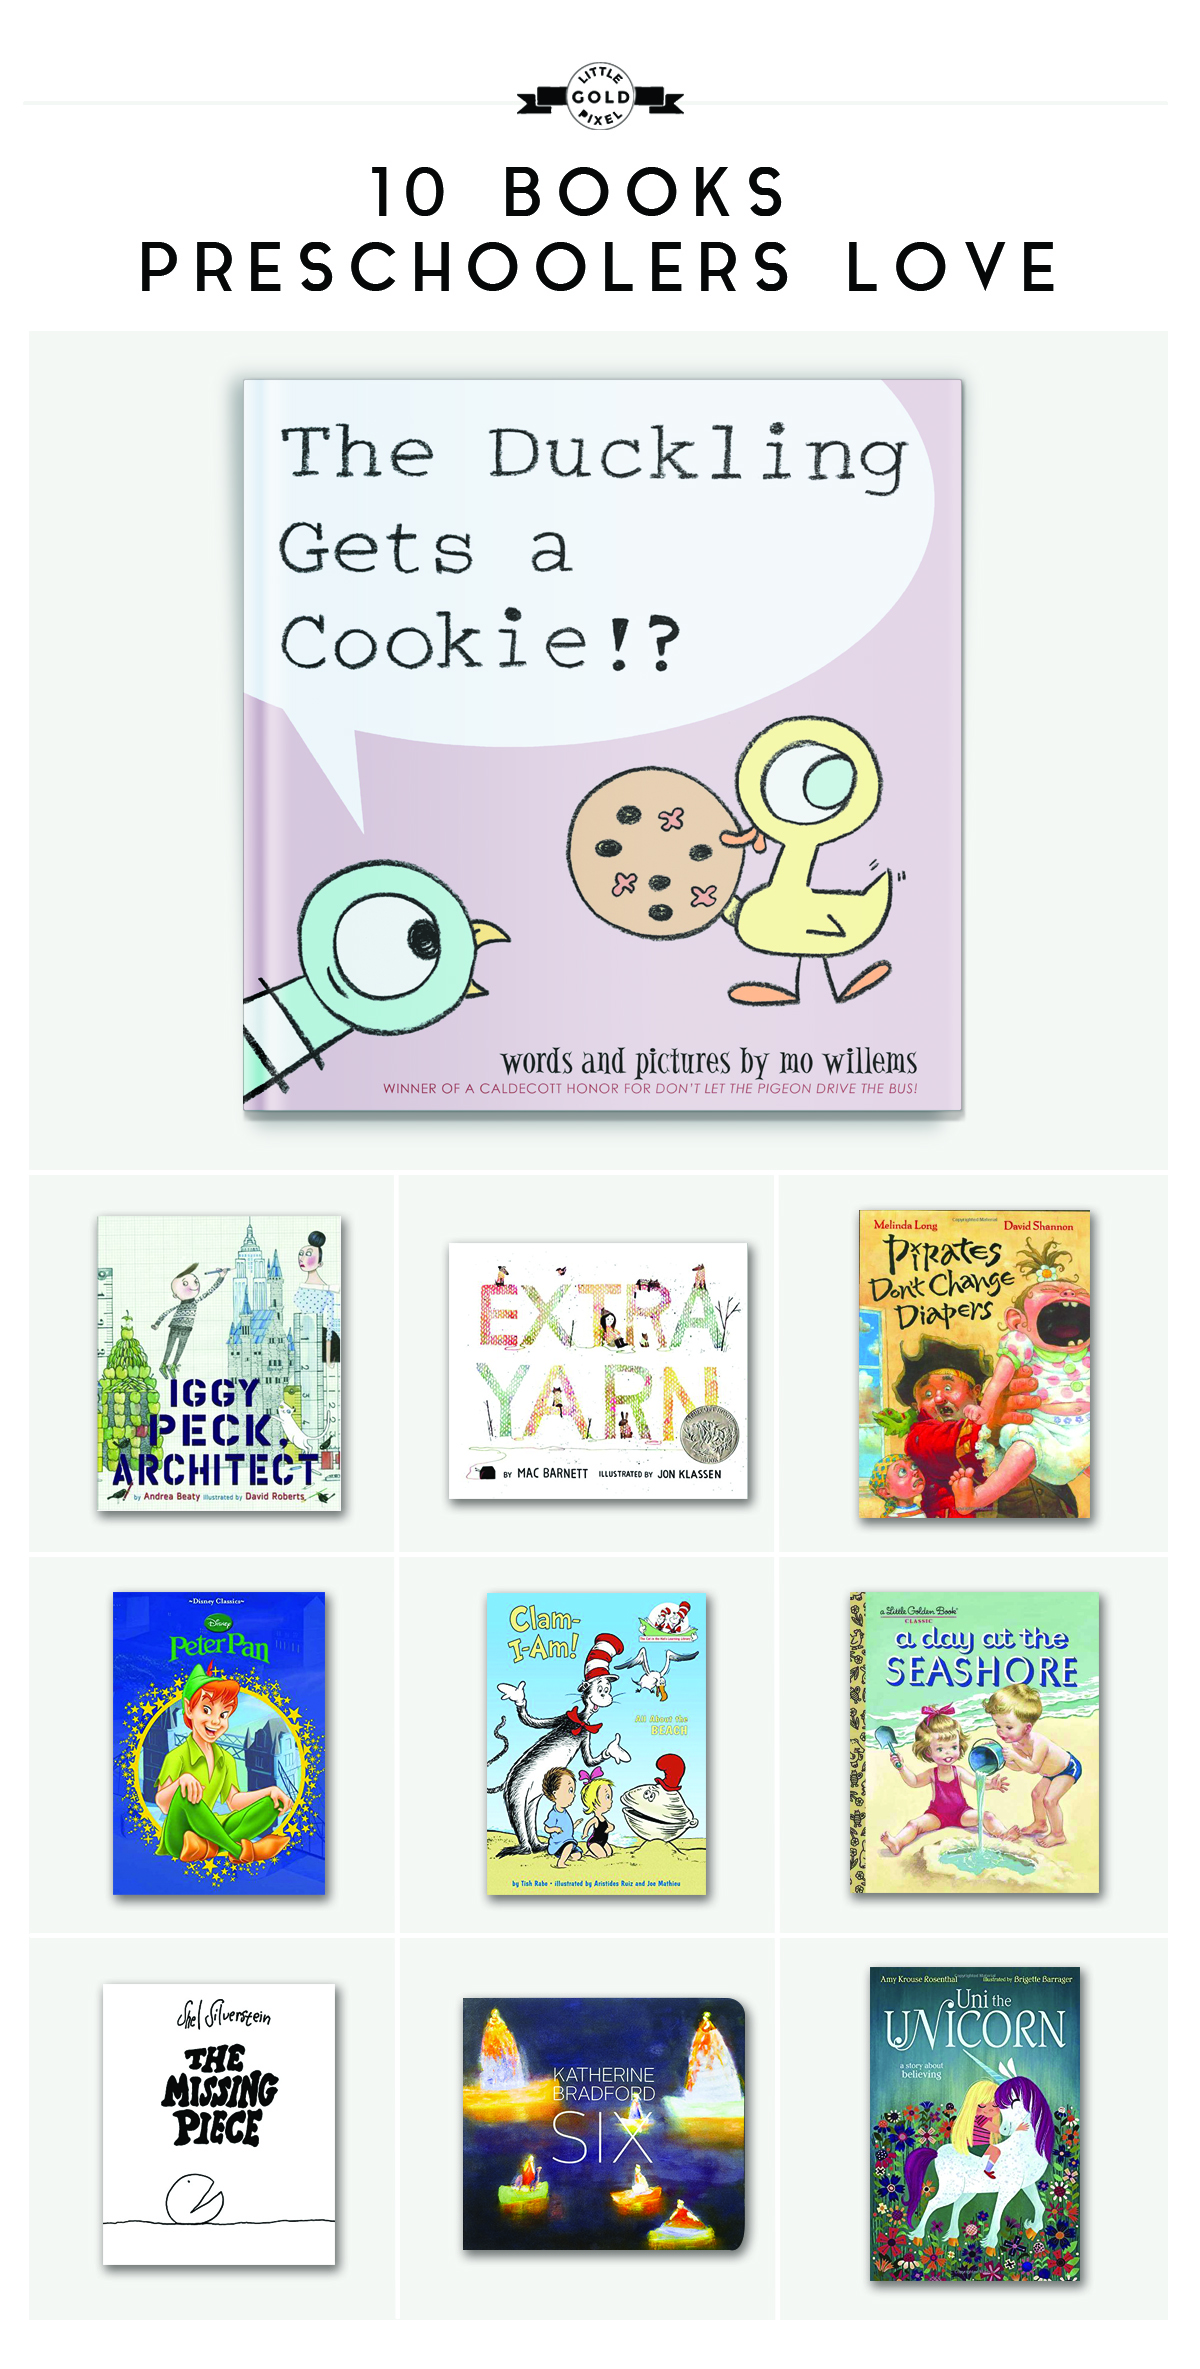 10-books-preschoolers-love